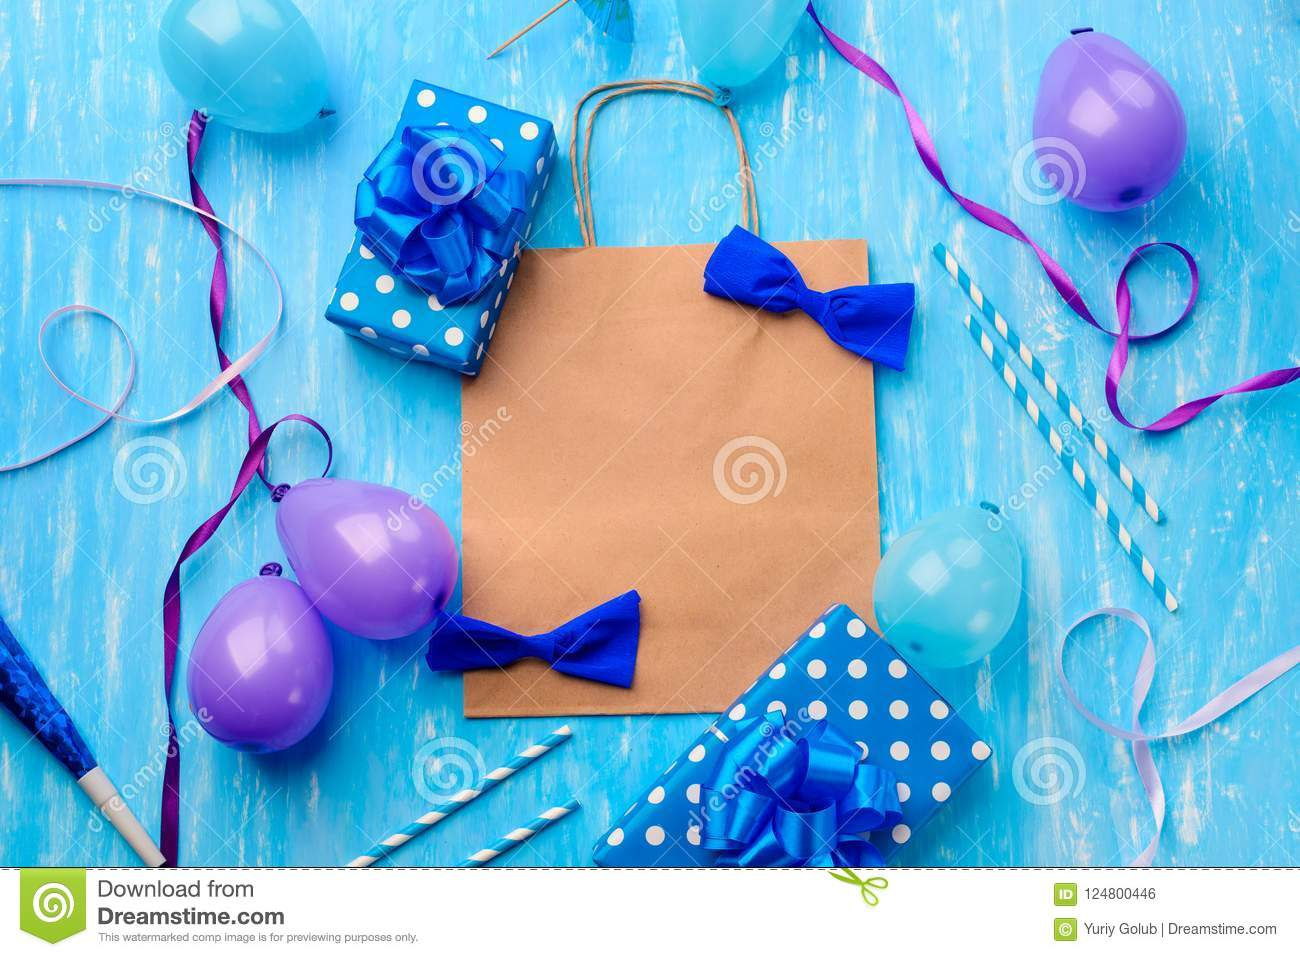 Handcrafted Bows Violet Balloons Cocktail Straws Noisemakers Polka Dots On The Blue Background Heartwarming Horizontal Birthday Card Template